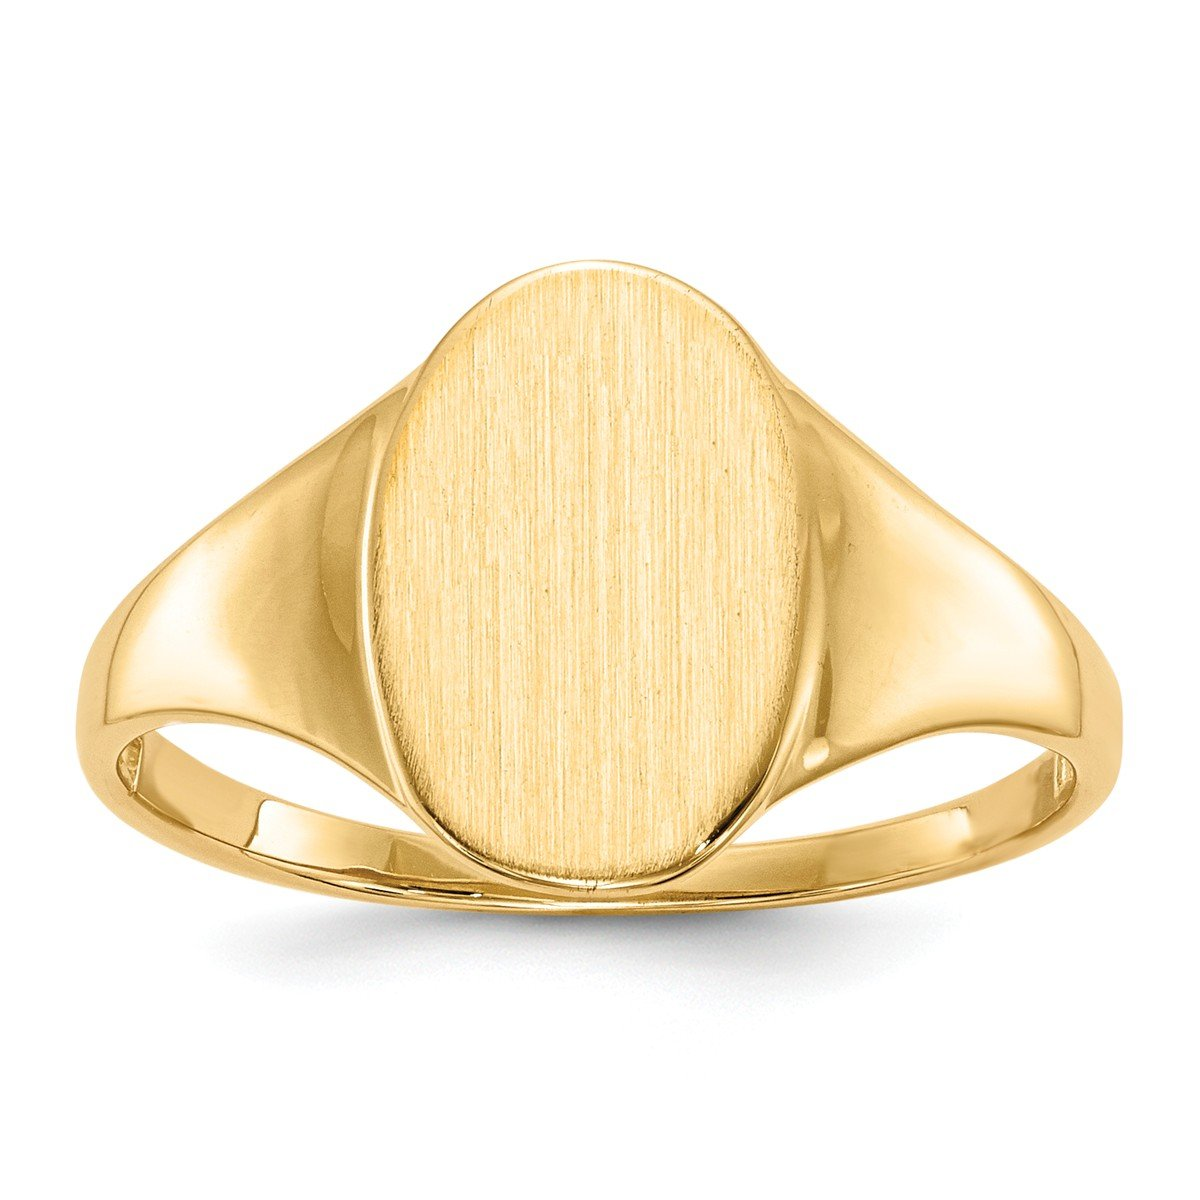 Roy Rose Jewelry 14K Yellow Gold Open Back Mens Womens Signet Ring Custom Personailzed with Free Engraving Available Initial or Monogram ~ Size 6